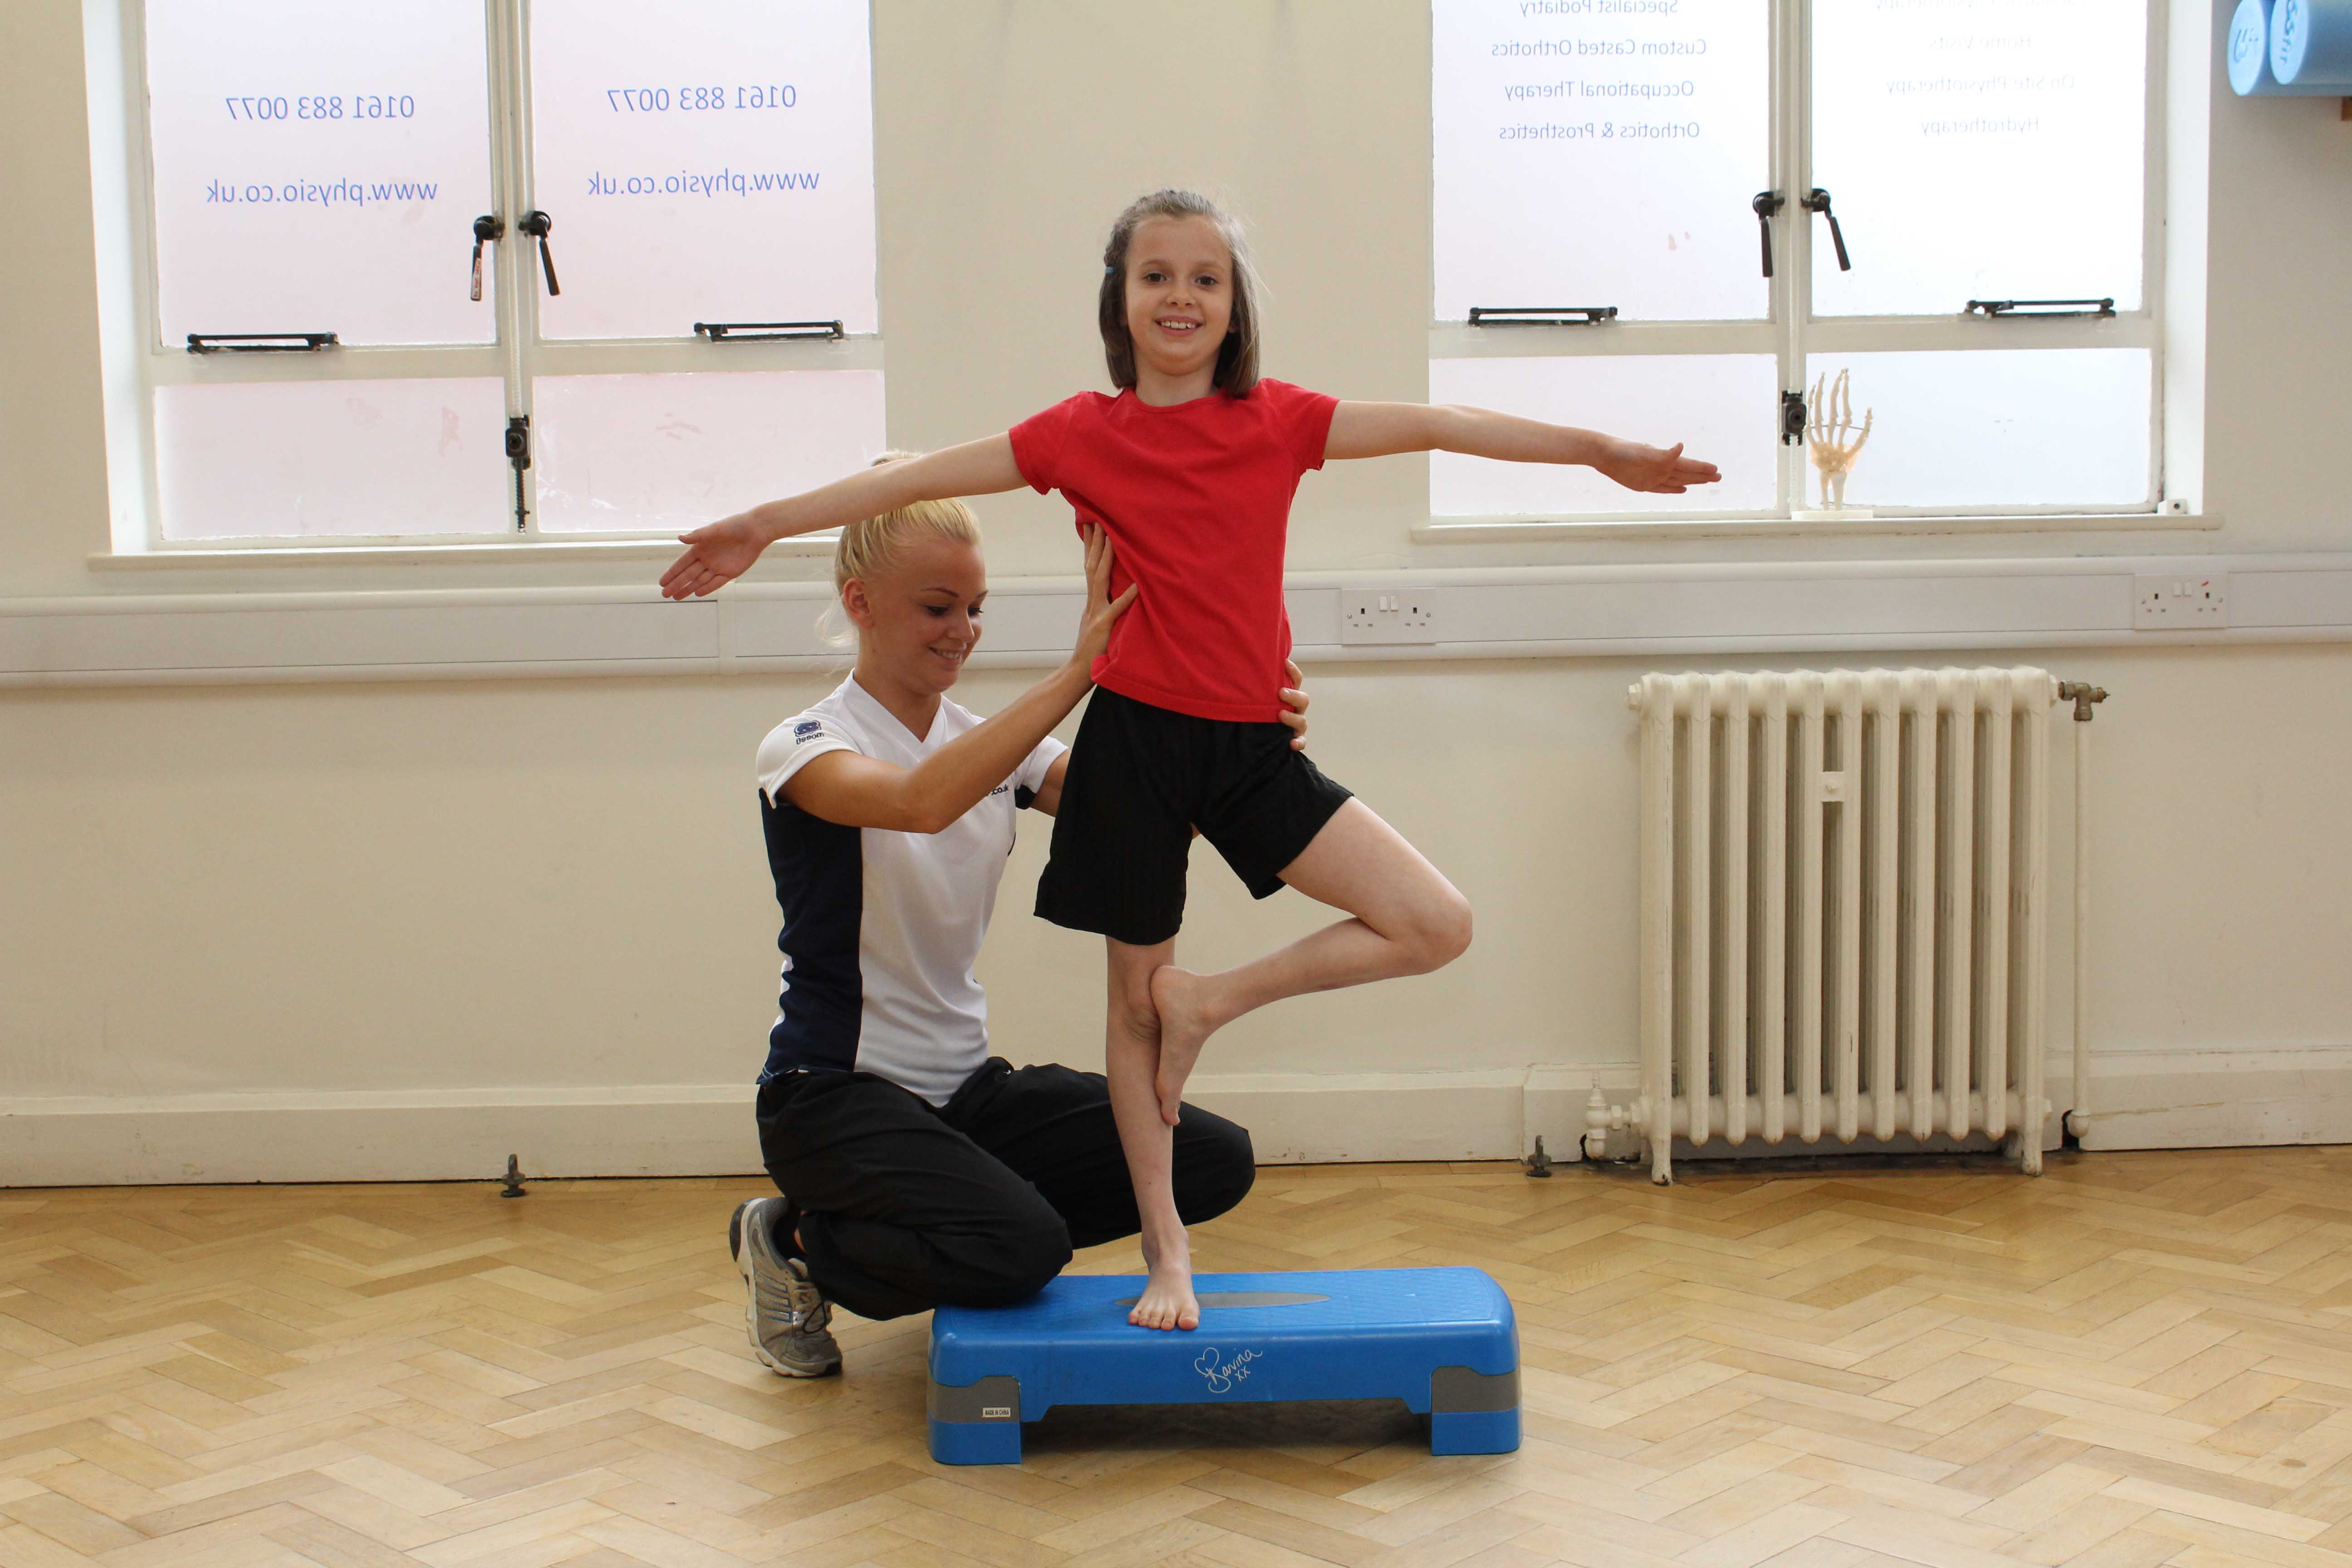 Toning and stability exercises supervised by specialist physiotherapist to manage hypermobility